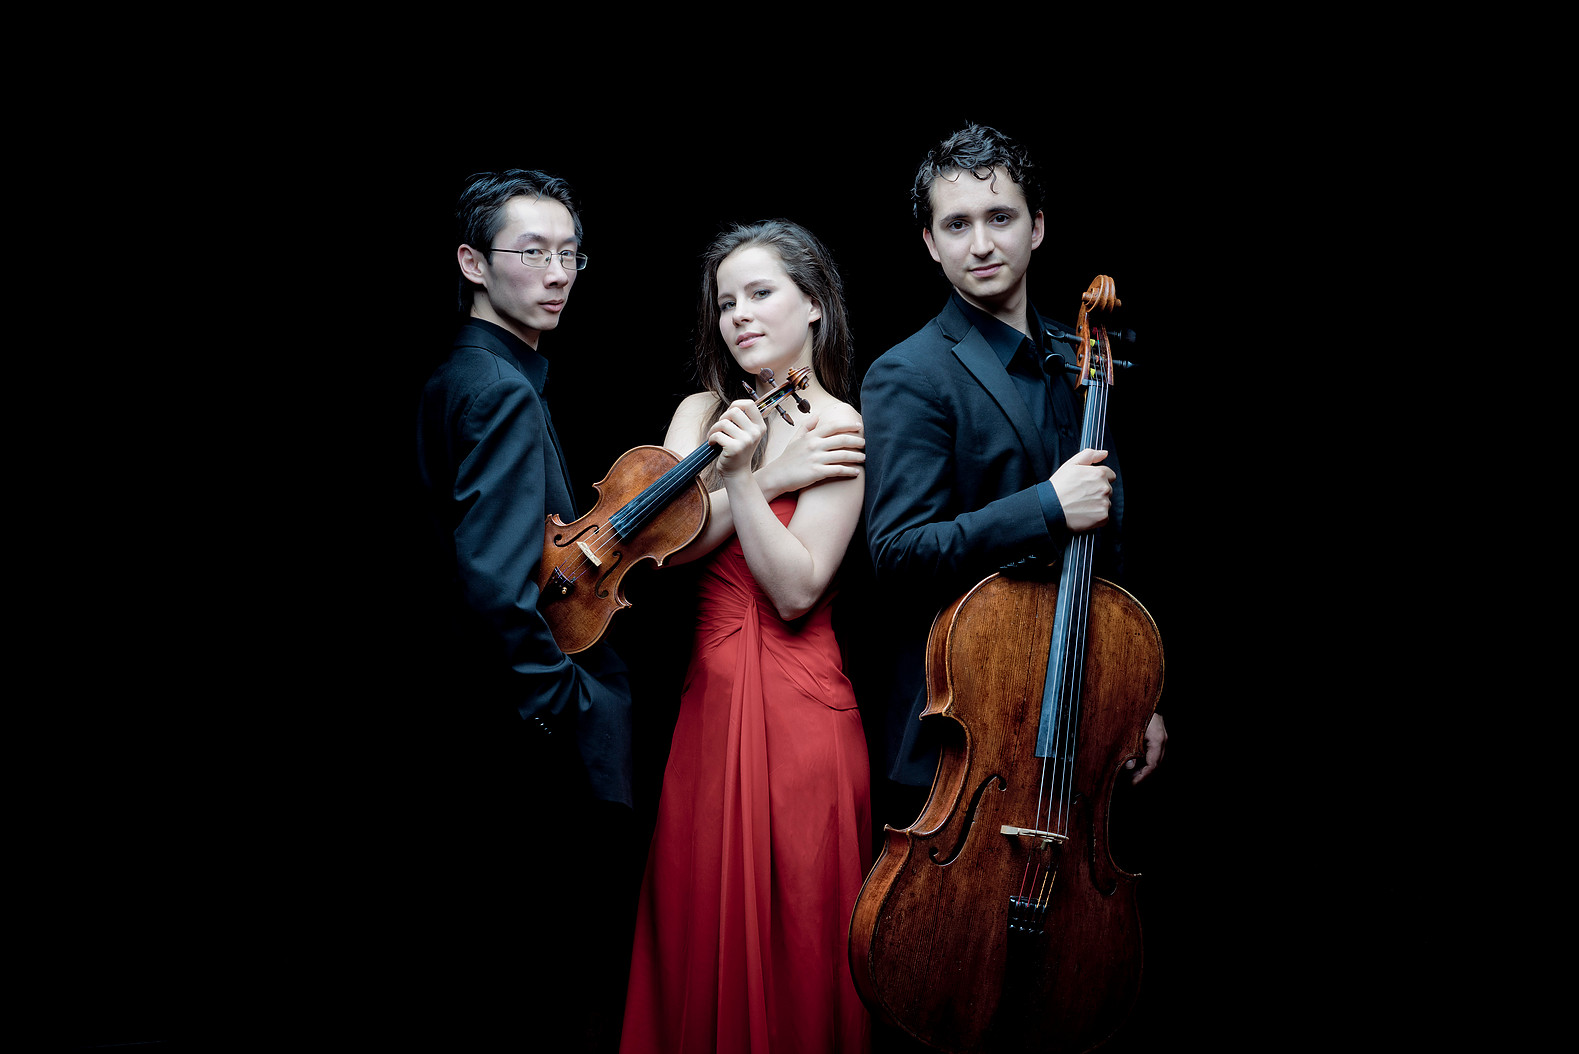 Thursday, 5th March - Amatis Piano Triohttps://www.amatistrio.comShostakovich: Piano Trio No.1 in C minor, Op.10Tarrodi: MoorlandsRavel: Piano Trio in A minor, M.67